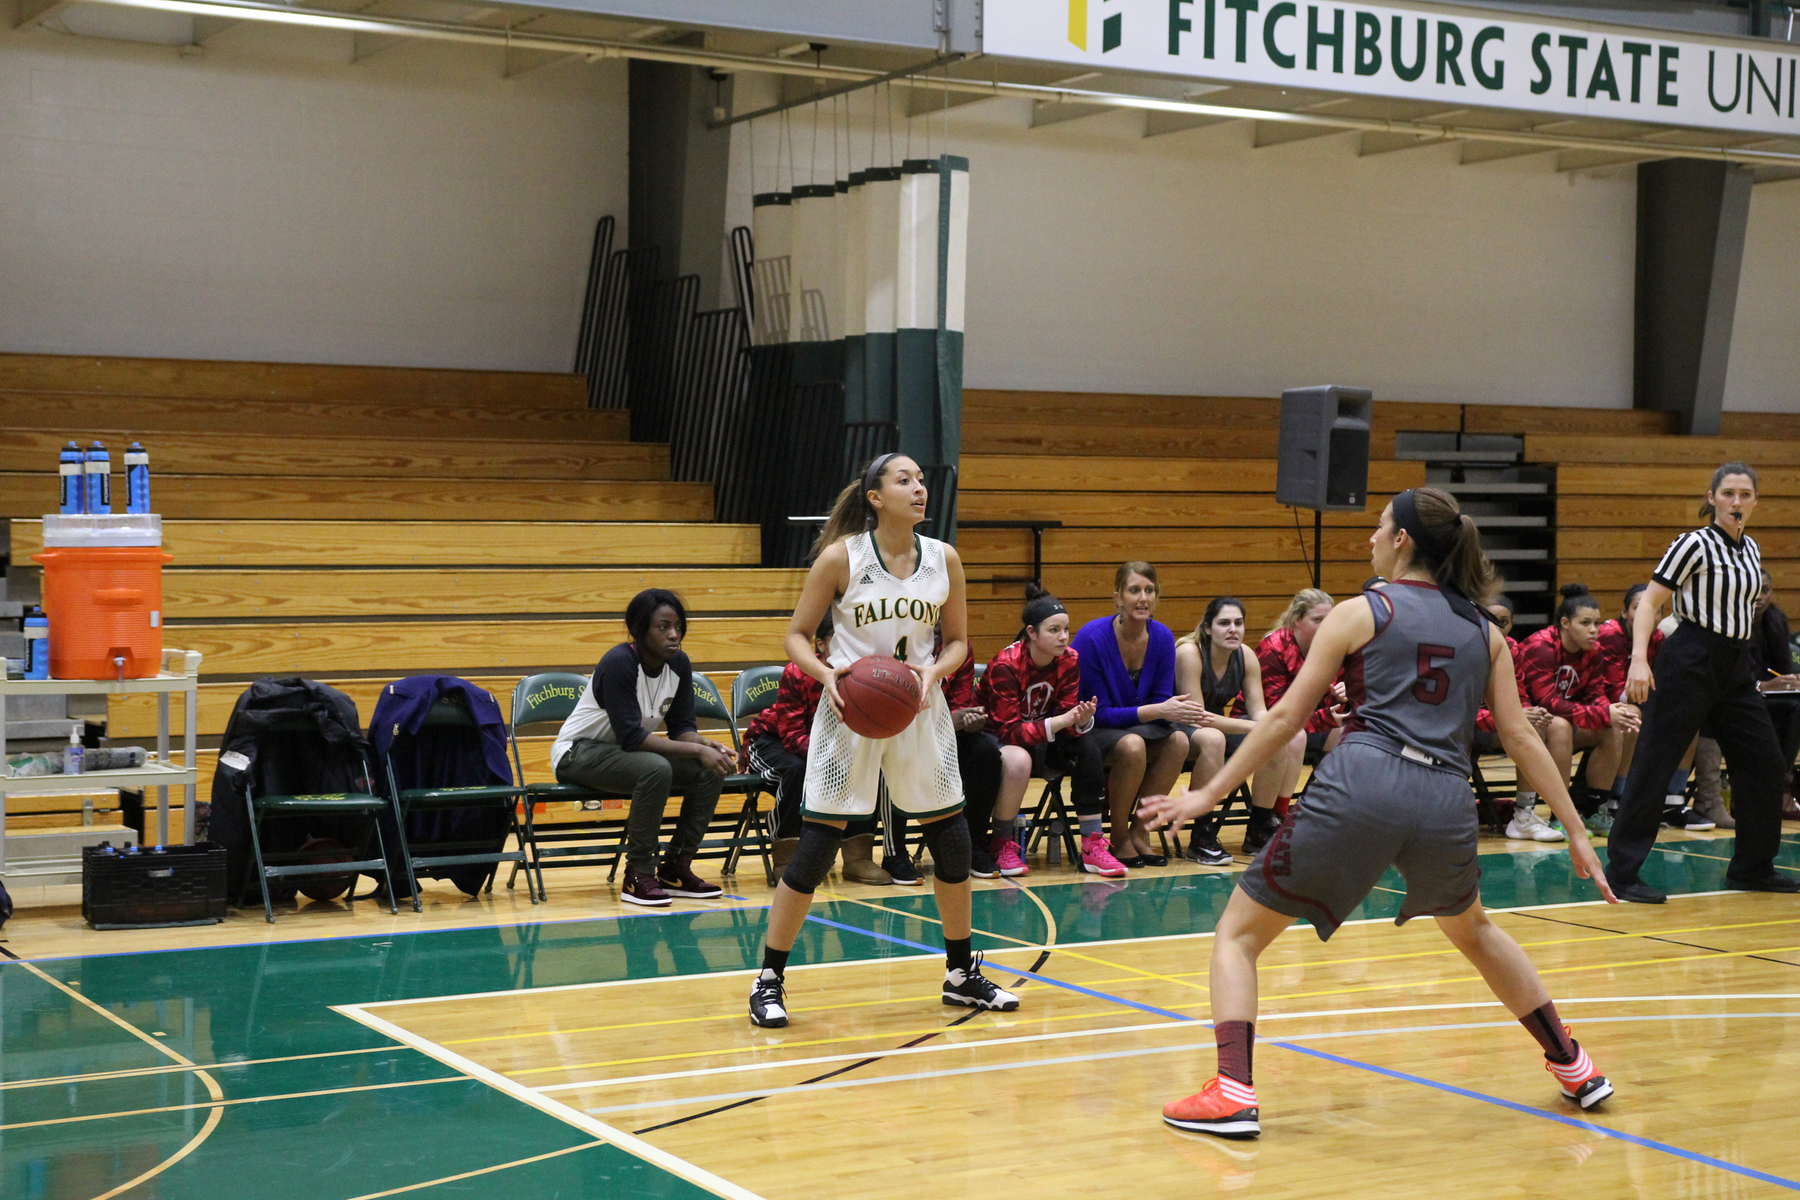 Fitchburg State Falls At Framingham State, 99-44